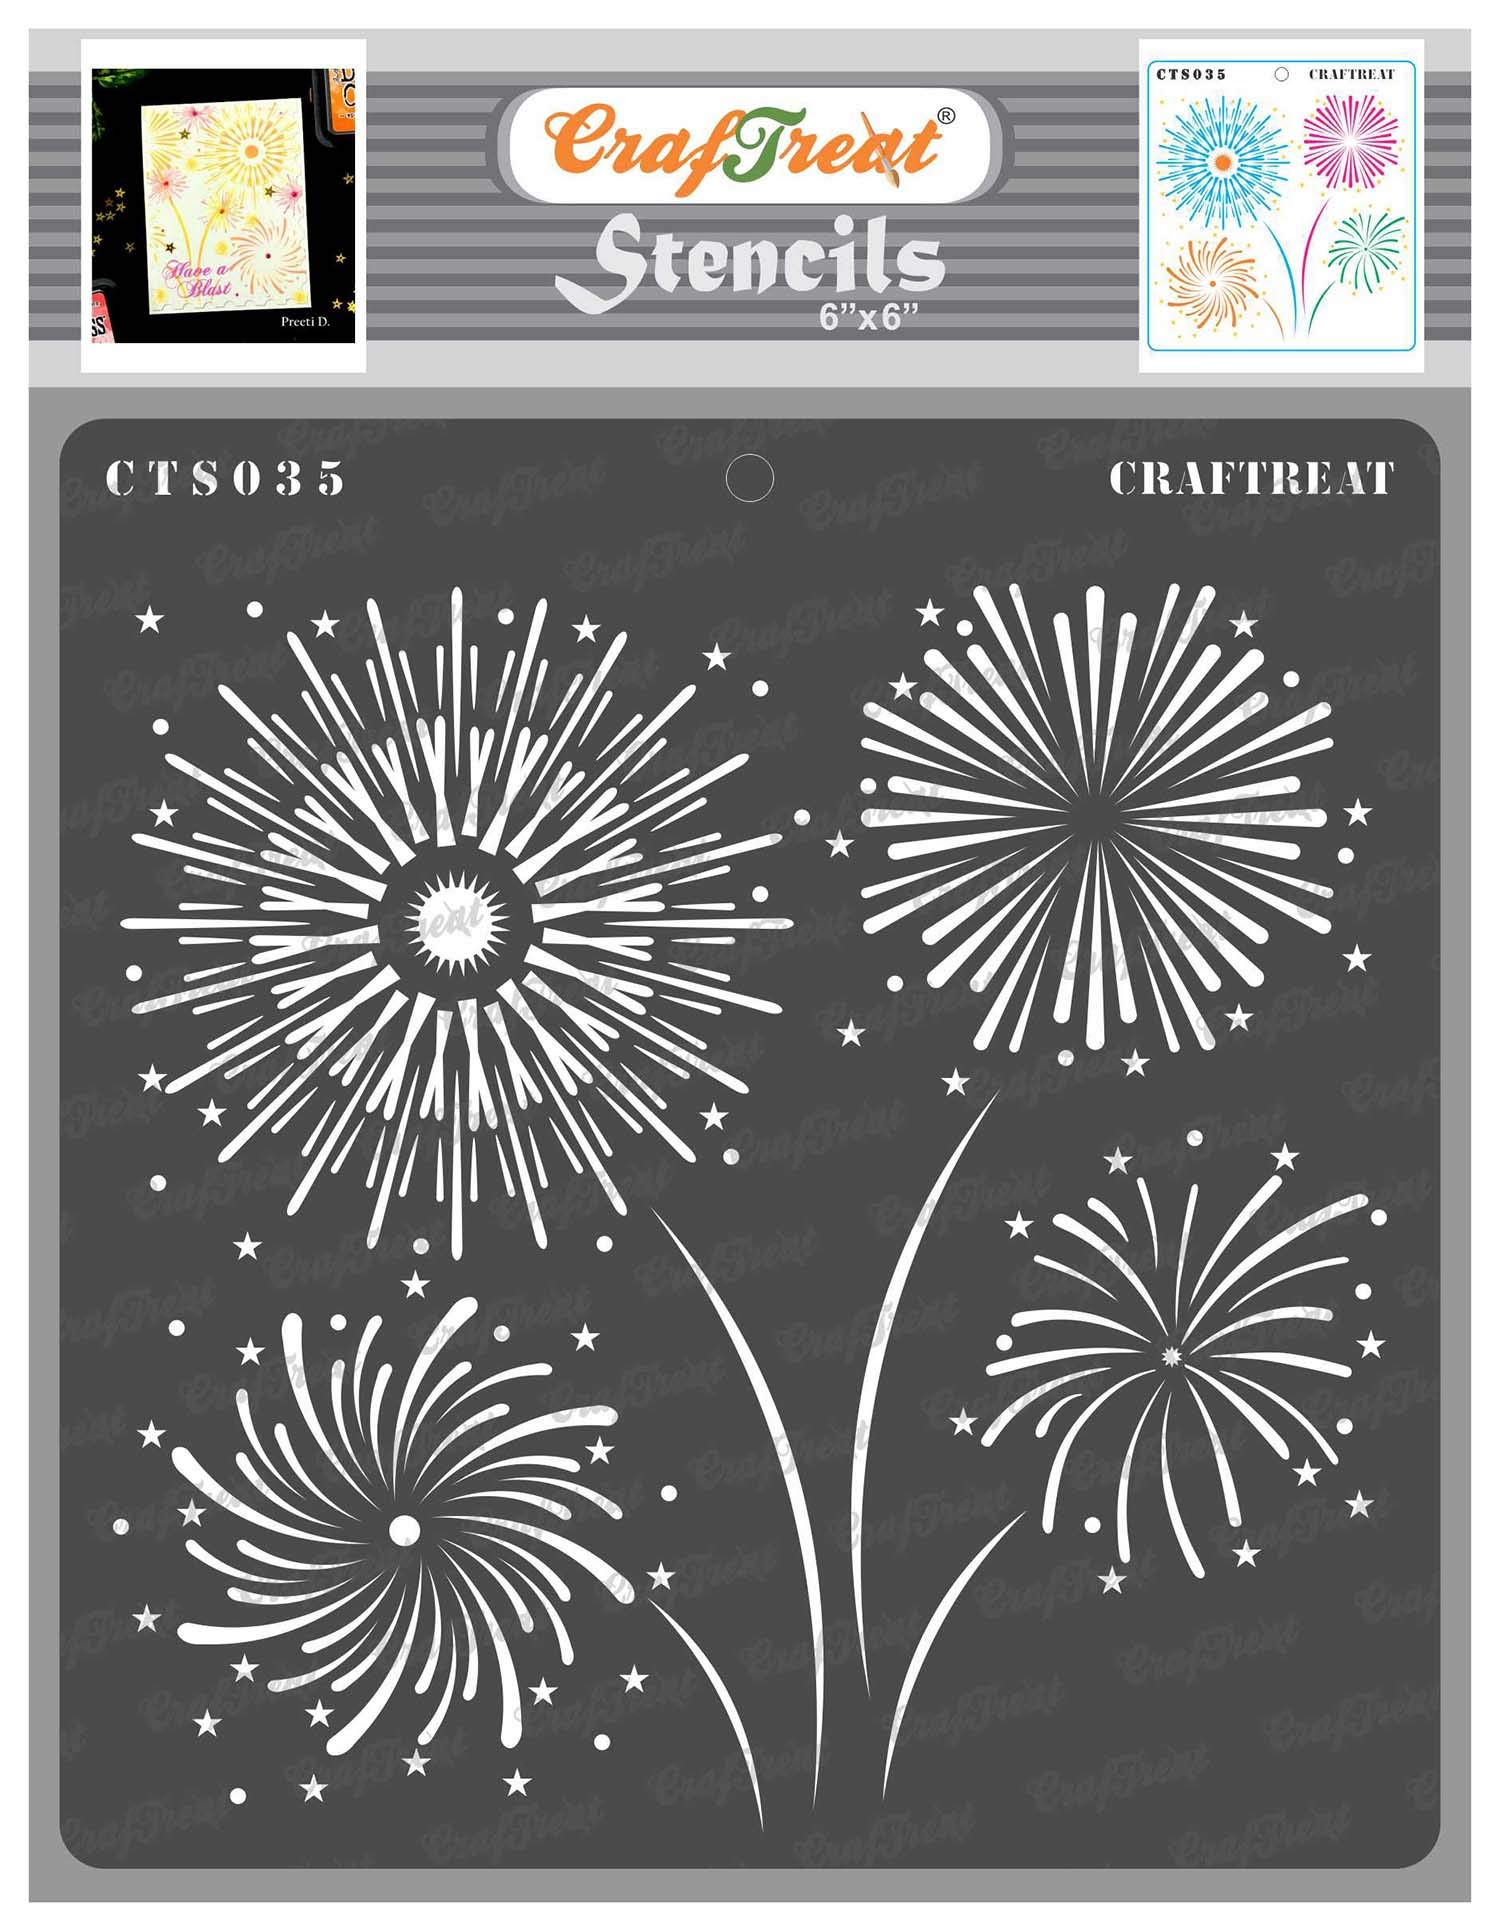 CrafTreat Stencils for Painting on Wood, Canvas, Paper, Fabric, Floor, Wall and Tile - Fireworks Stencil - 6x6 Inches - Reusable DIY Art and Craft Stencils for Home Decor - Firework Stencils Painting